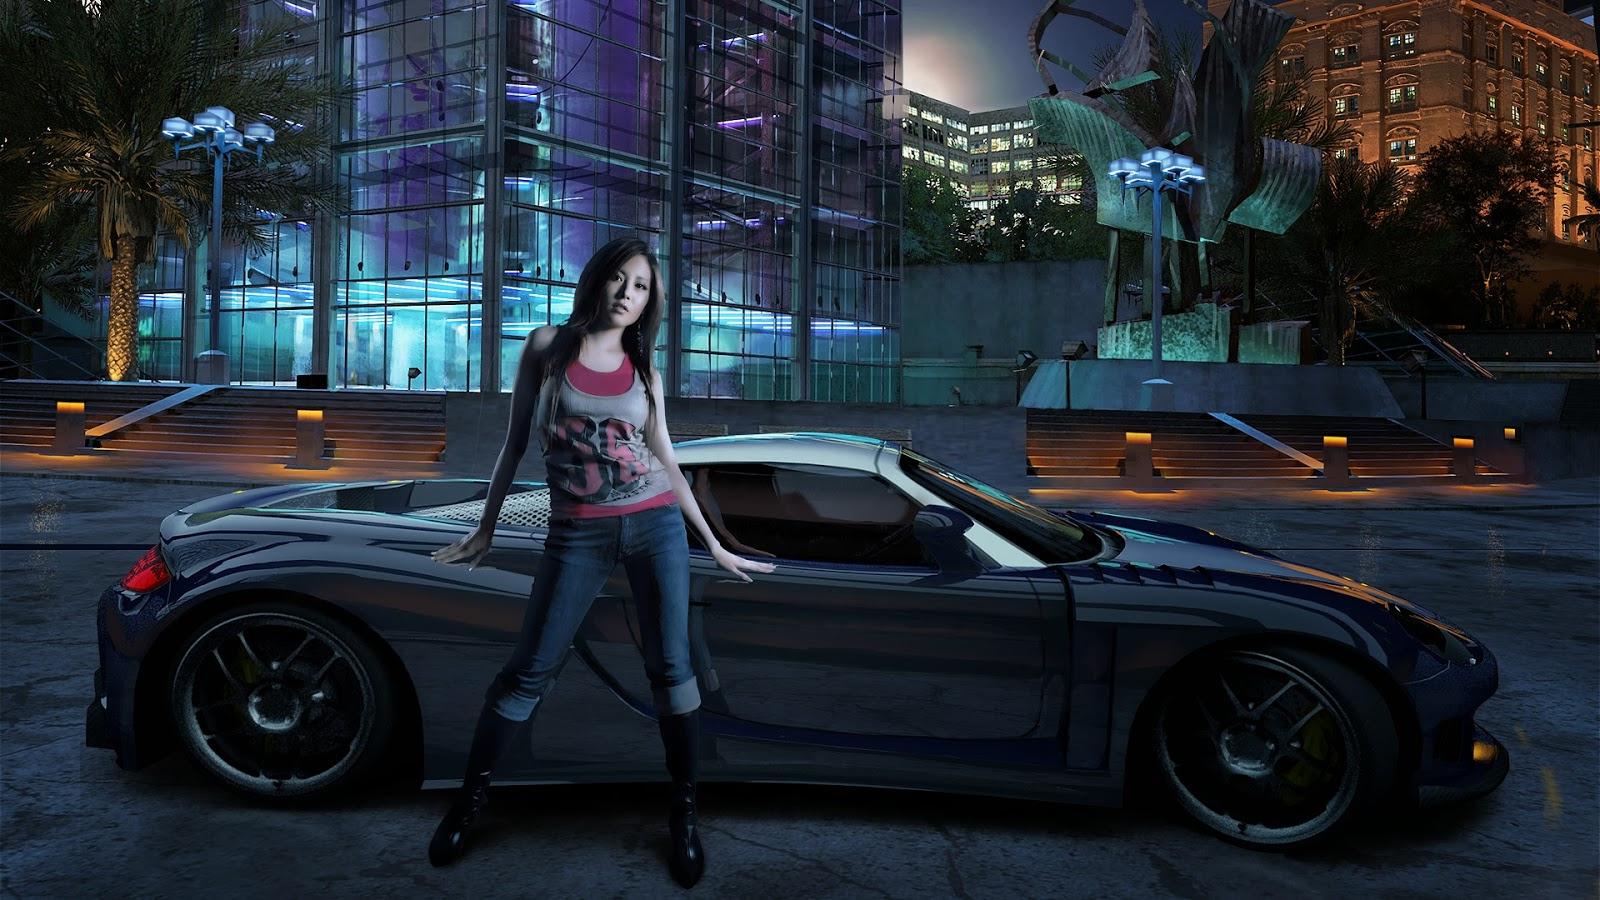 Girl with sports car night background HD wallpaper free downloadjpg 1600x900